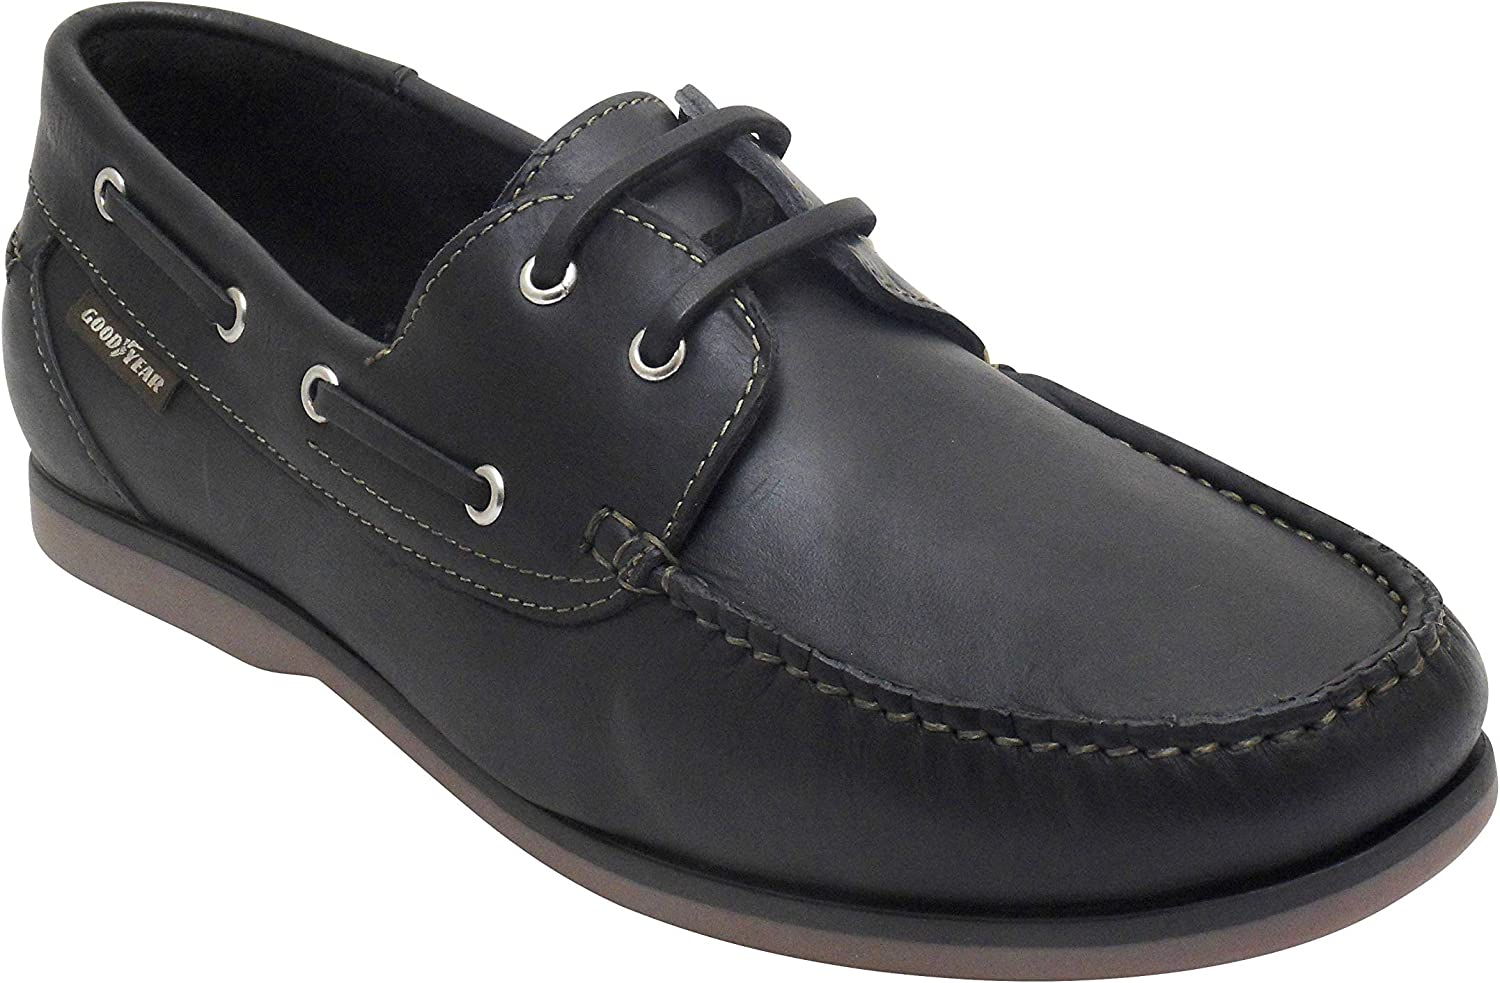 NFF Goodyear Leather Boat Shoes Black